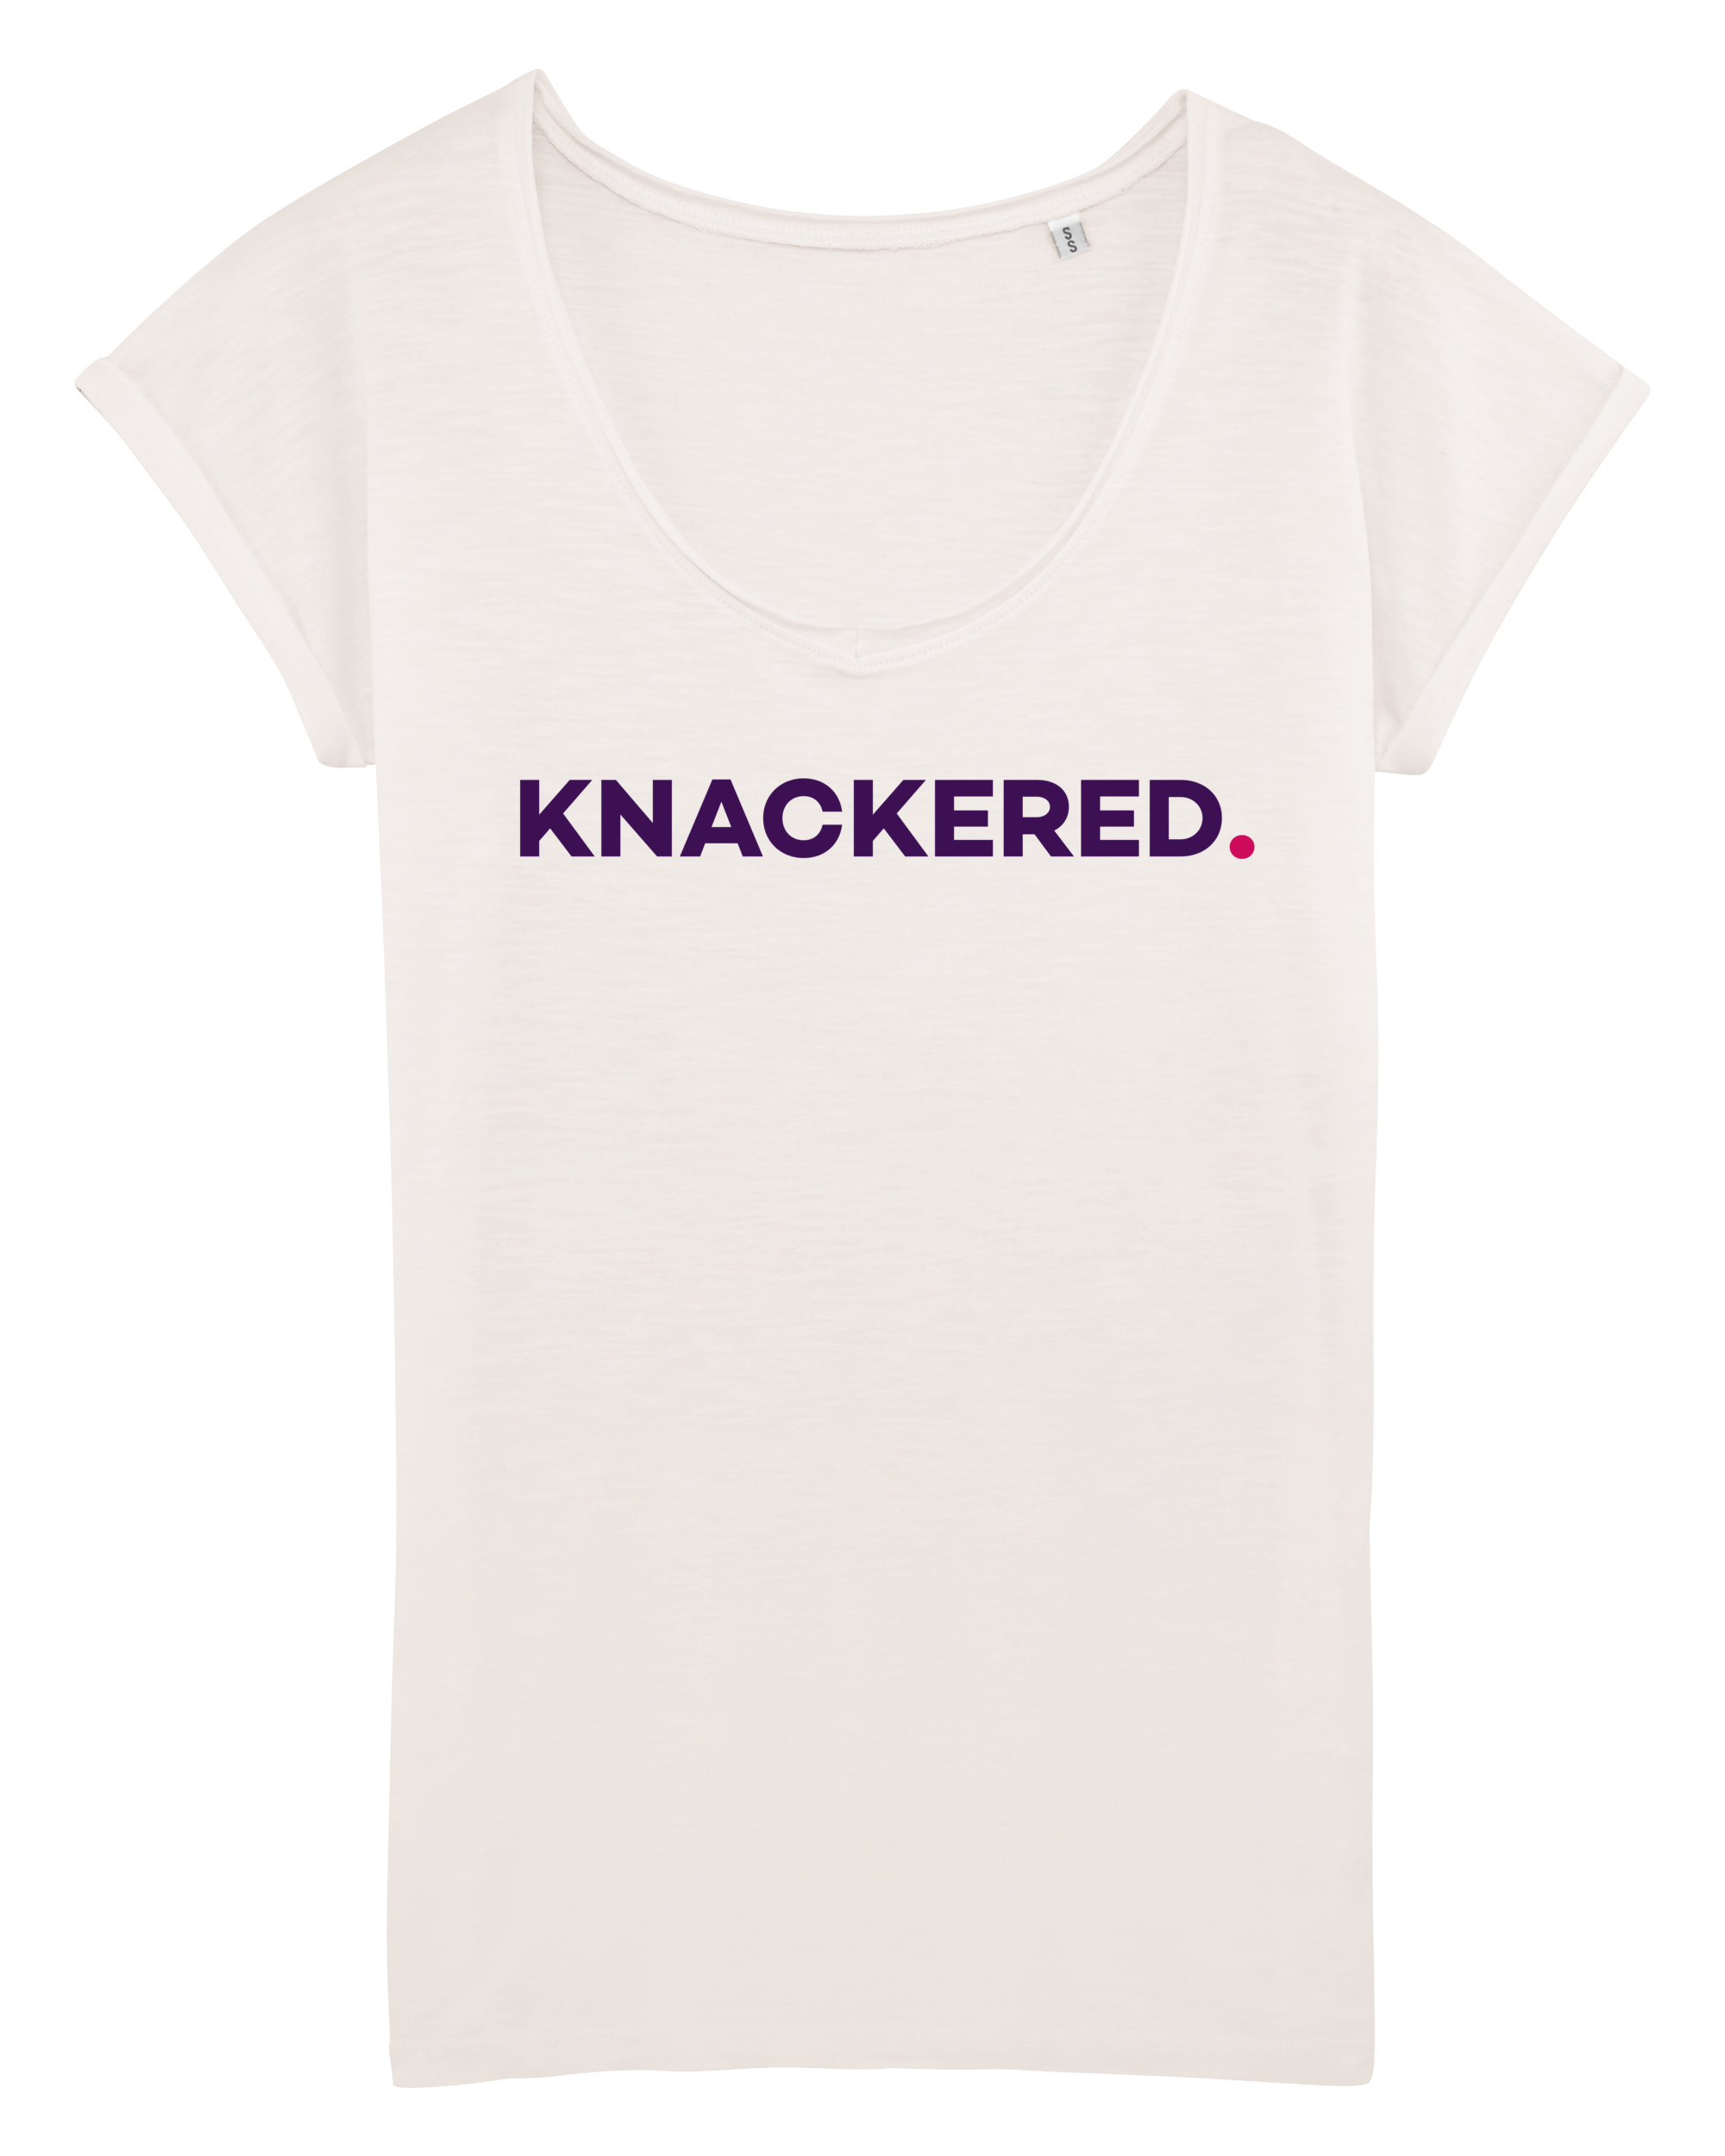 fwp by Rae, KNACKERED slogan t-shirt £28